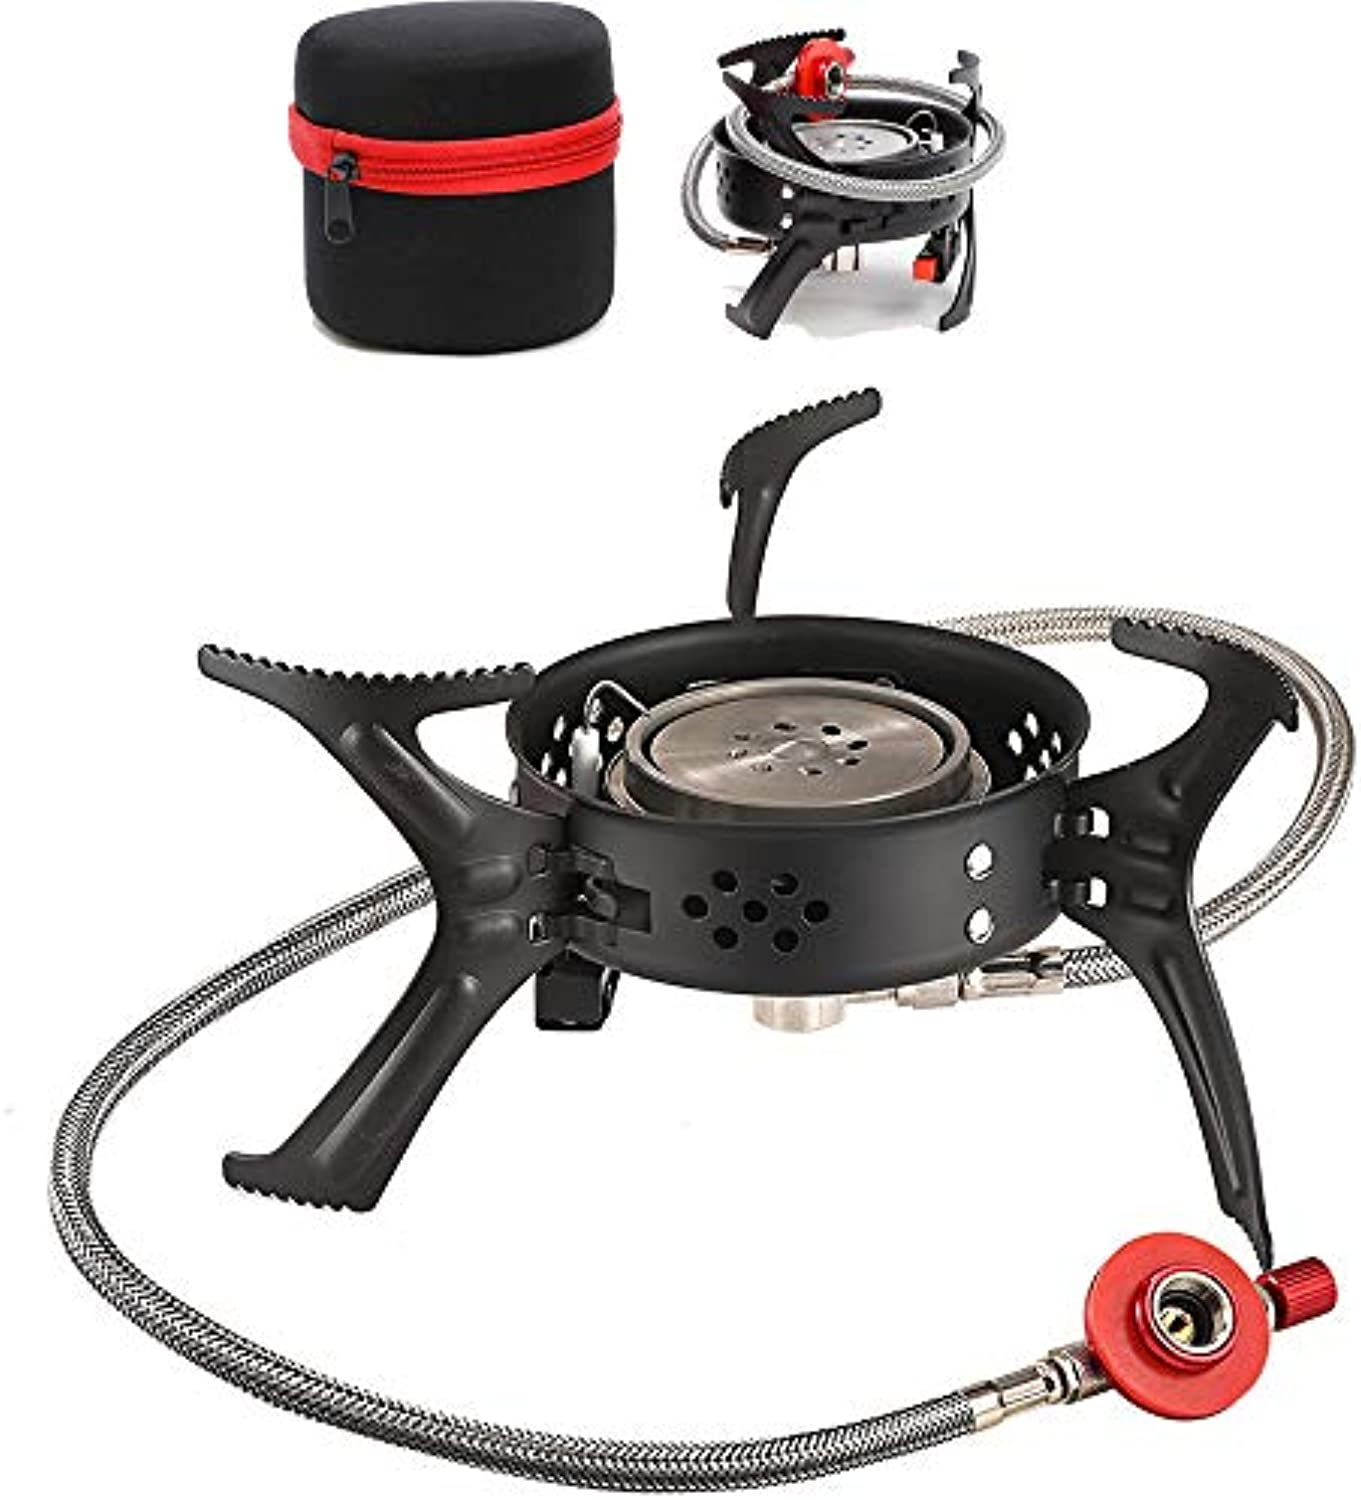 Camping Stove piezo igniter preheating System, Mini Small Foldable Compact Gas Stove, Flame Adjustable Windbreak Gas Burner Attachment Gas Cooker Camping Stove